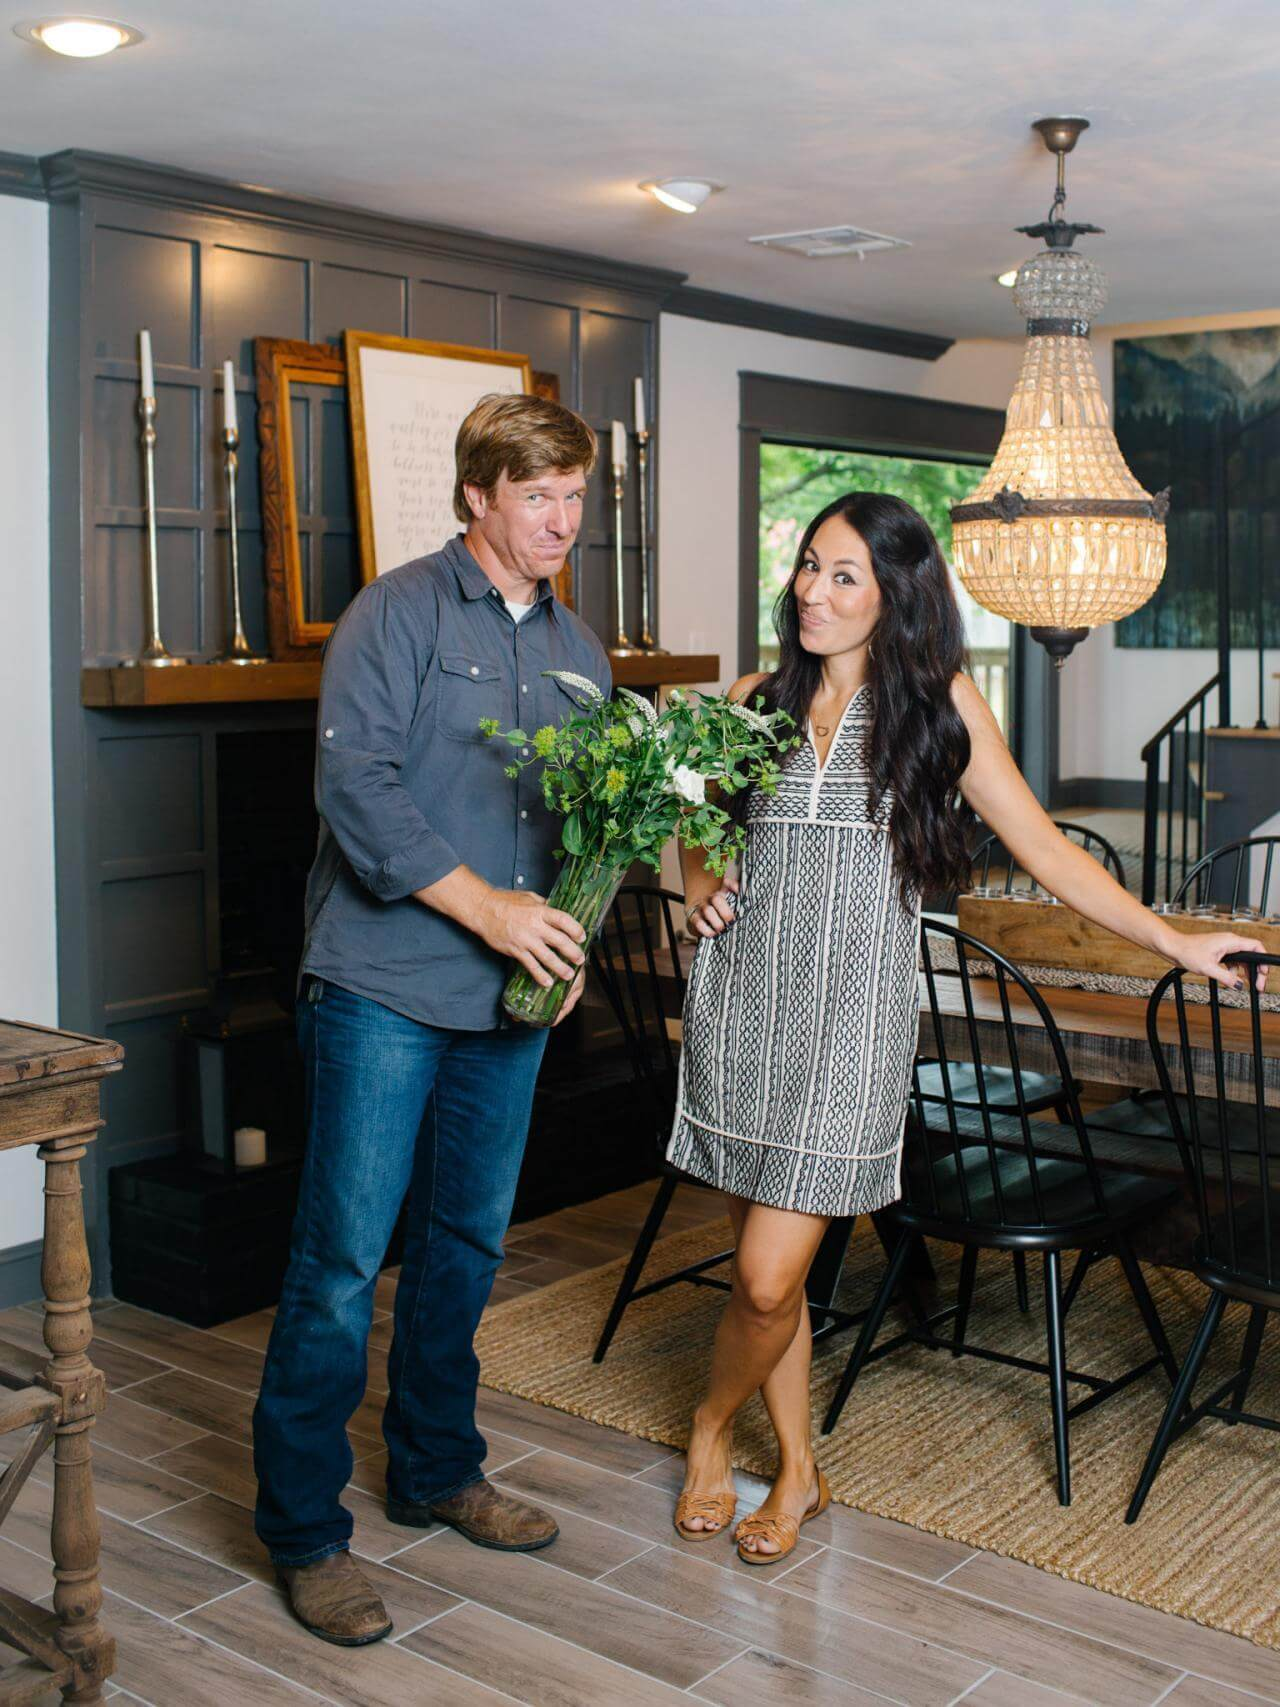 Joanna Gaines Inspired Capsule Wardrobe 10 Outfit Ideas: 30 Sexy Joanna Gaines Feet Pictures Are Too Much For You